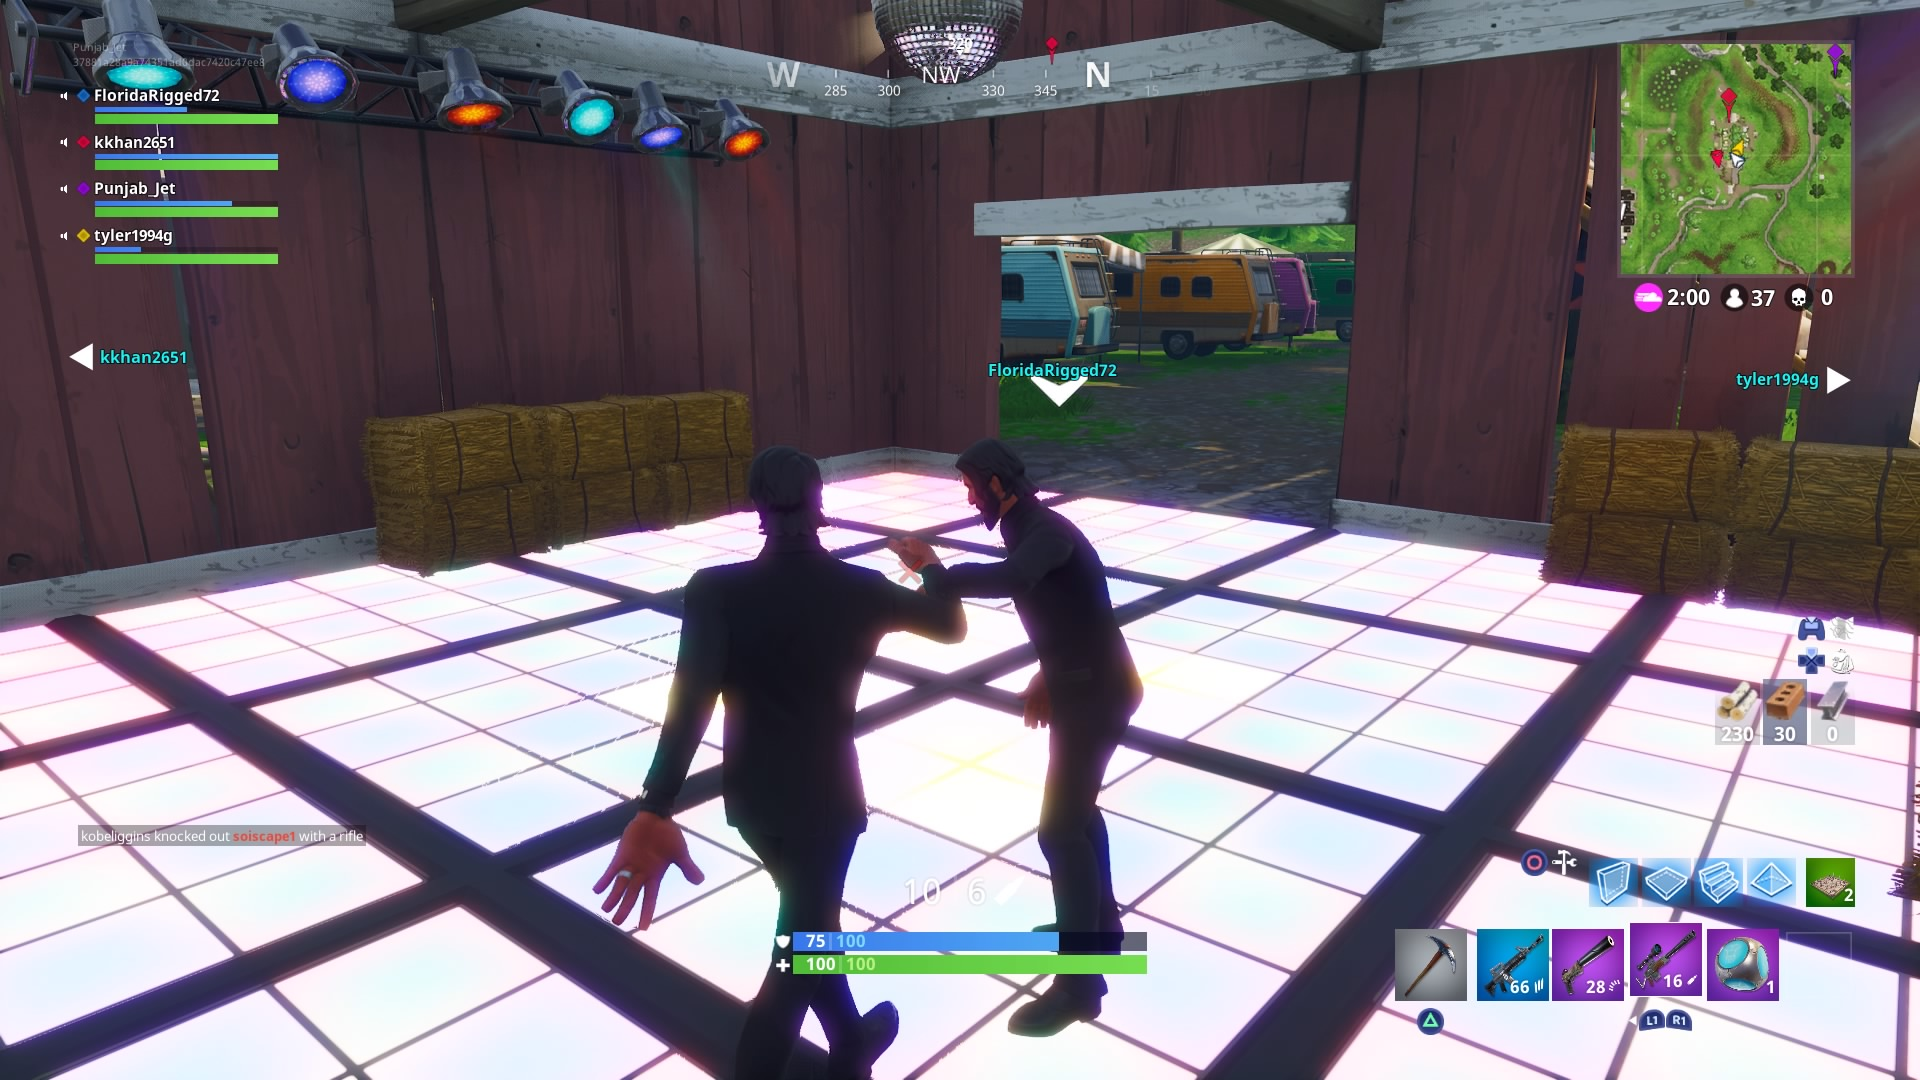 fortnite dance party desktop wallpaper 803